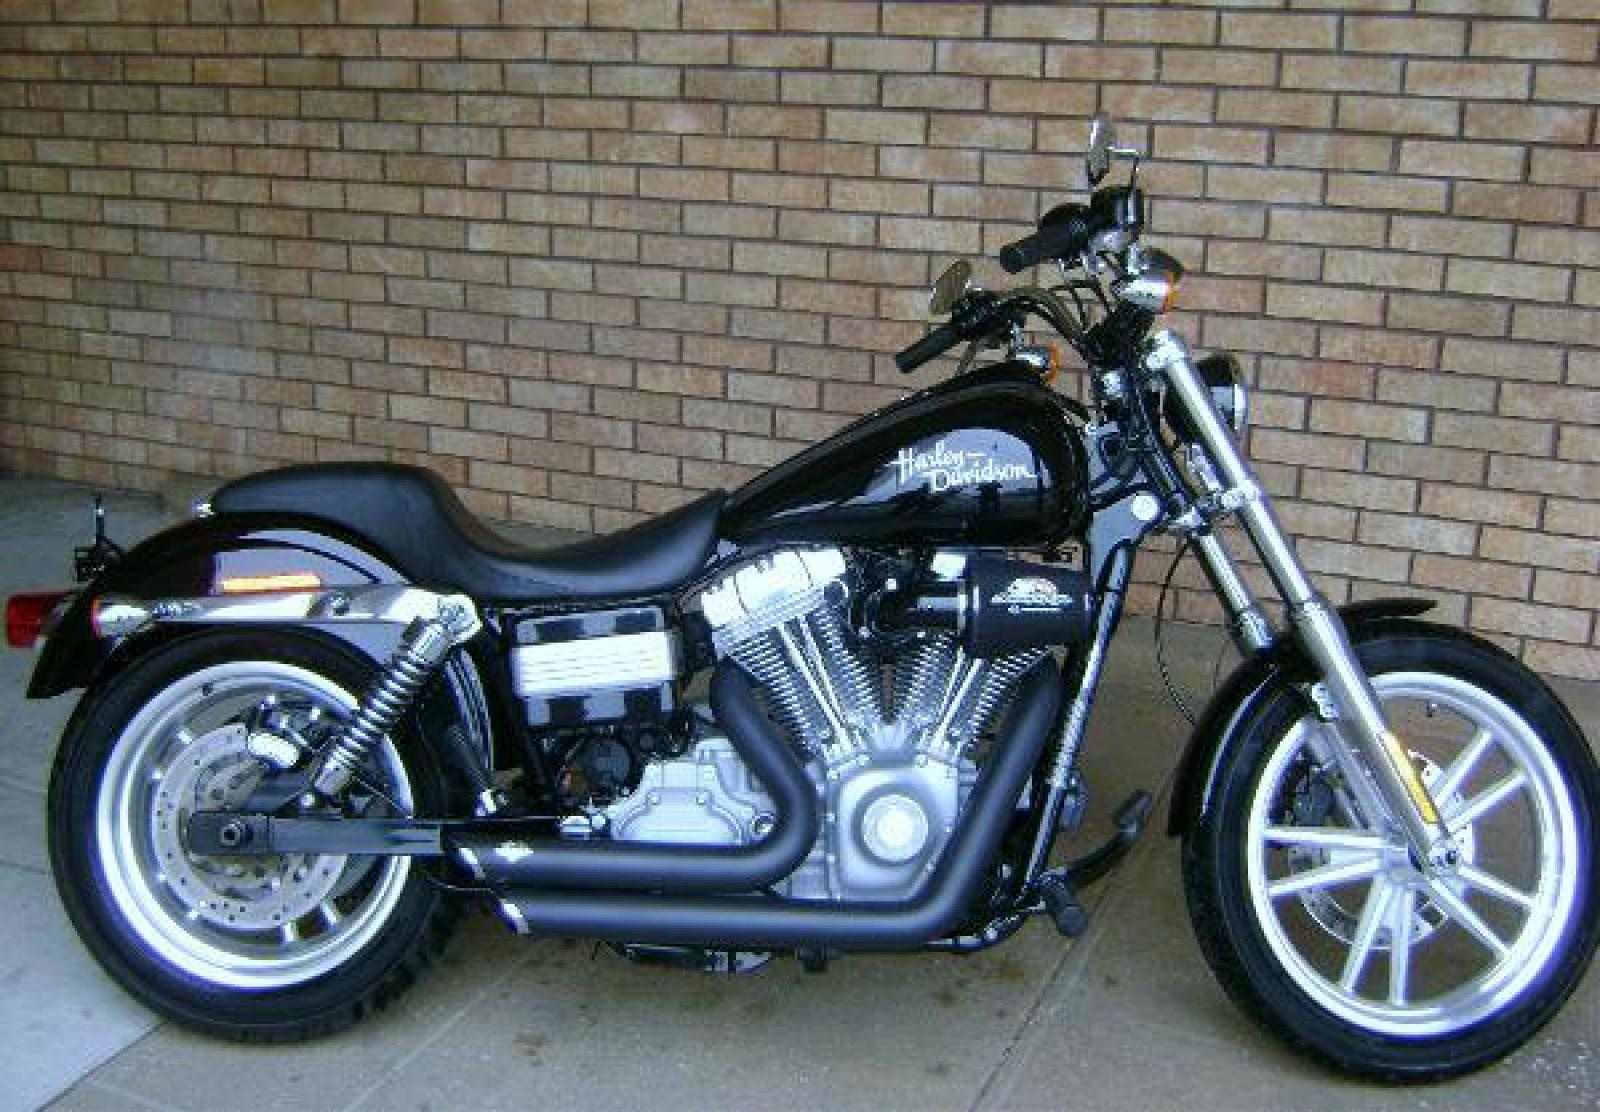 2006 harley davidson fxdci dyna super glide custom moto zombdrive com. Black Bedroom Furniture Sets. Home Design Ideas